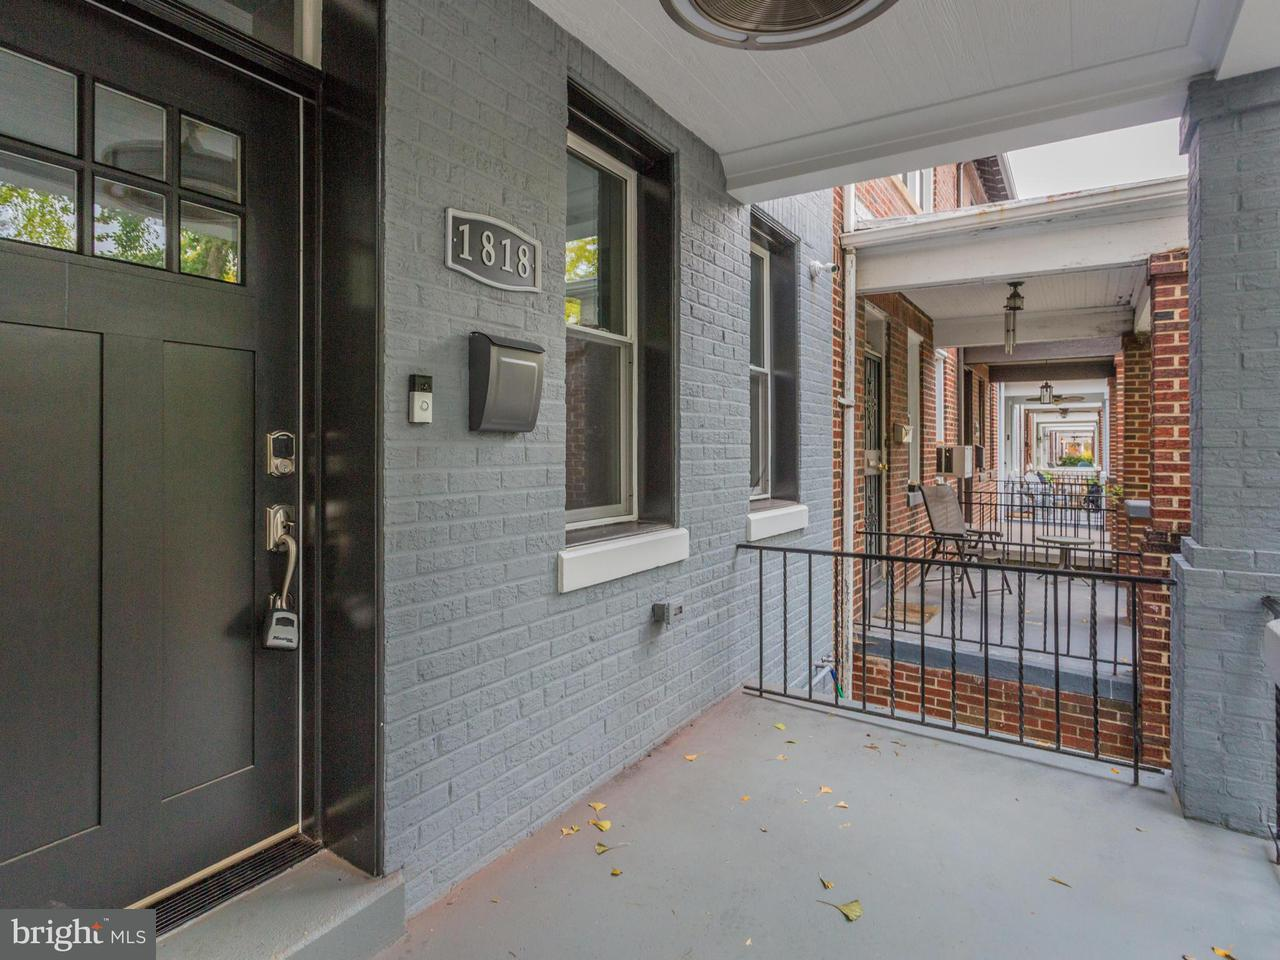 Additional photo for property listing at 1818 Burke St Se 1818 Burke St Se Washington, District Of Columbia 20003 Vereinigte Staaten